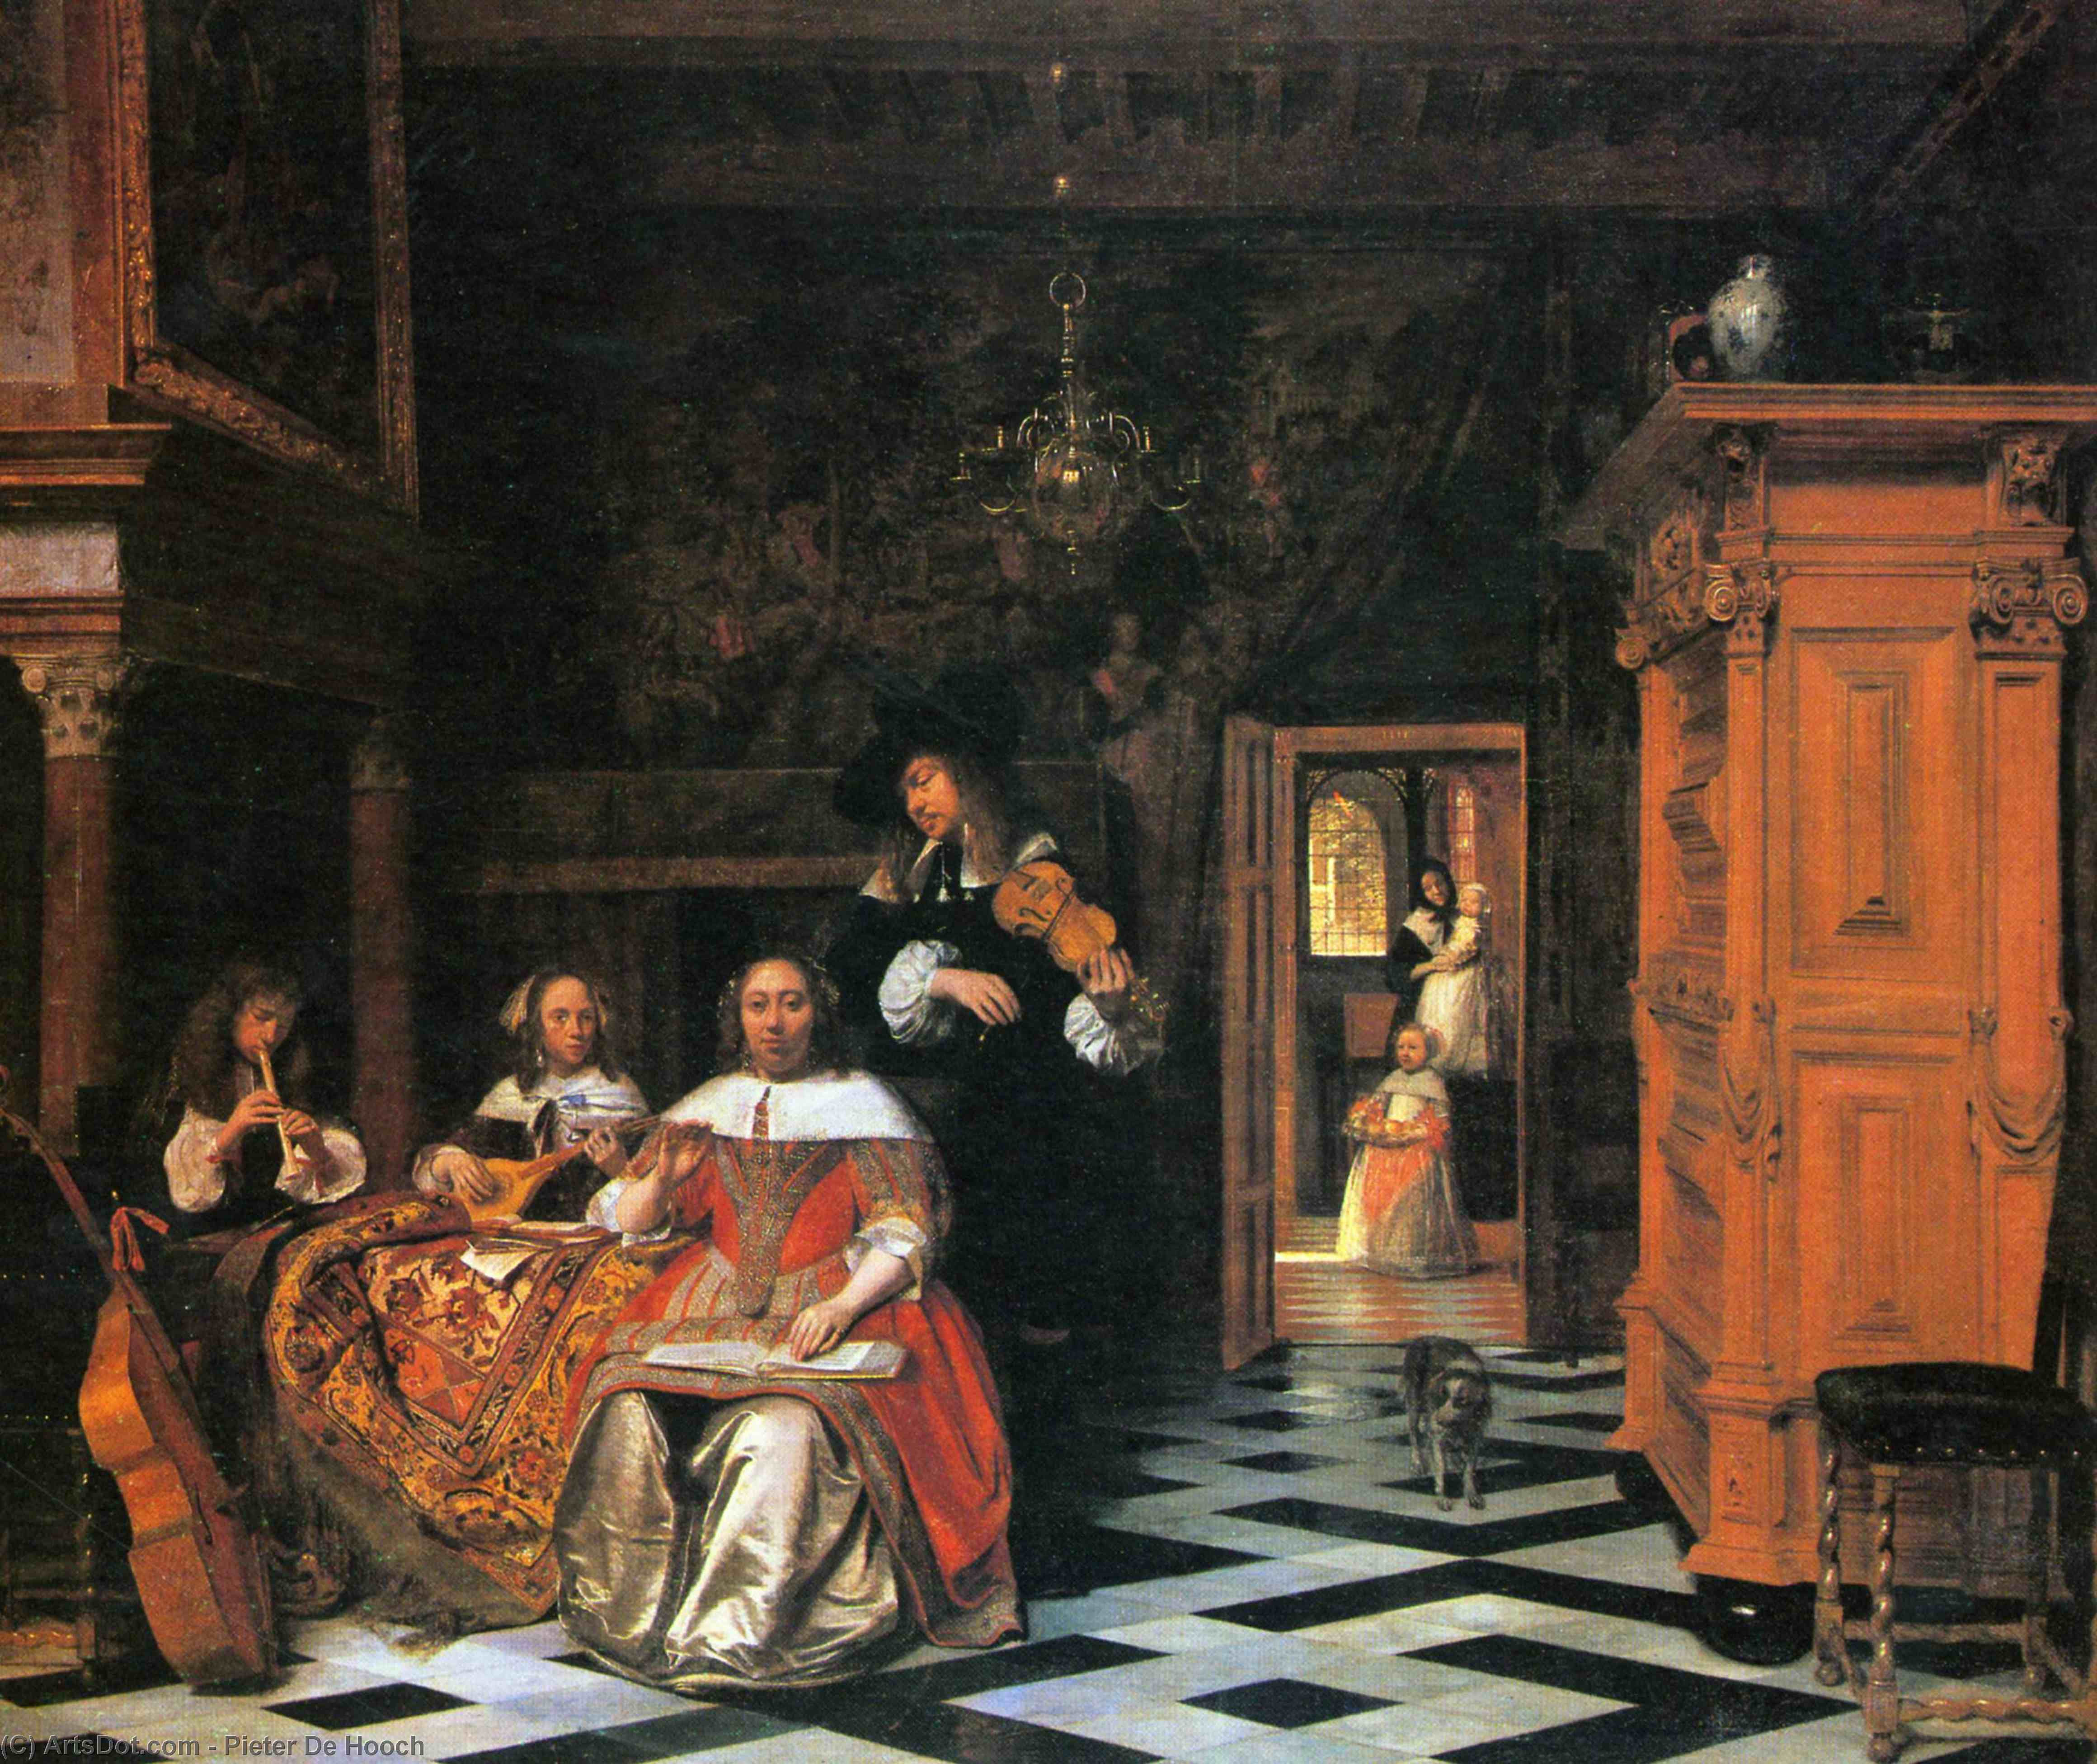 Wikioo.org - The Encyclopedia of Fine Arts - Painting, Artwork by Pieter De Hooch - Portrait of a family of musicians